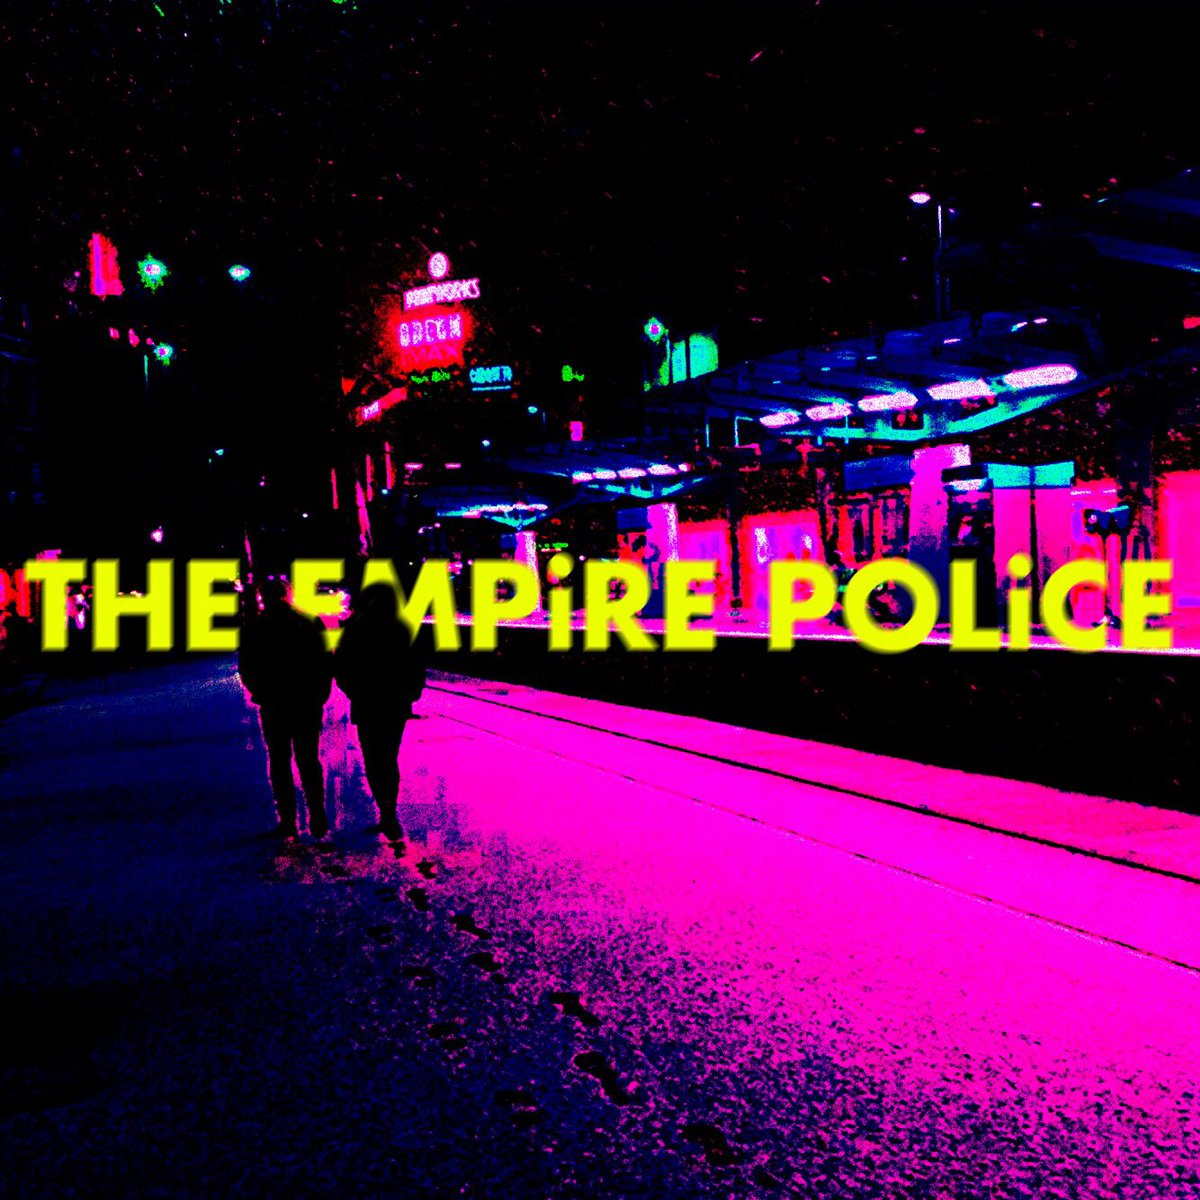 The Empire Police - Out of Nowhere